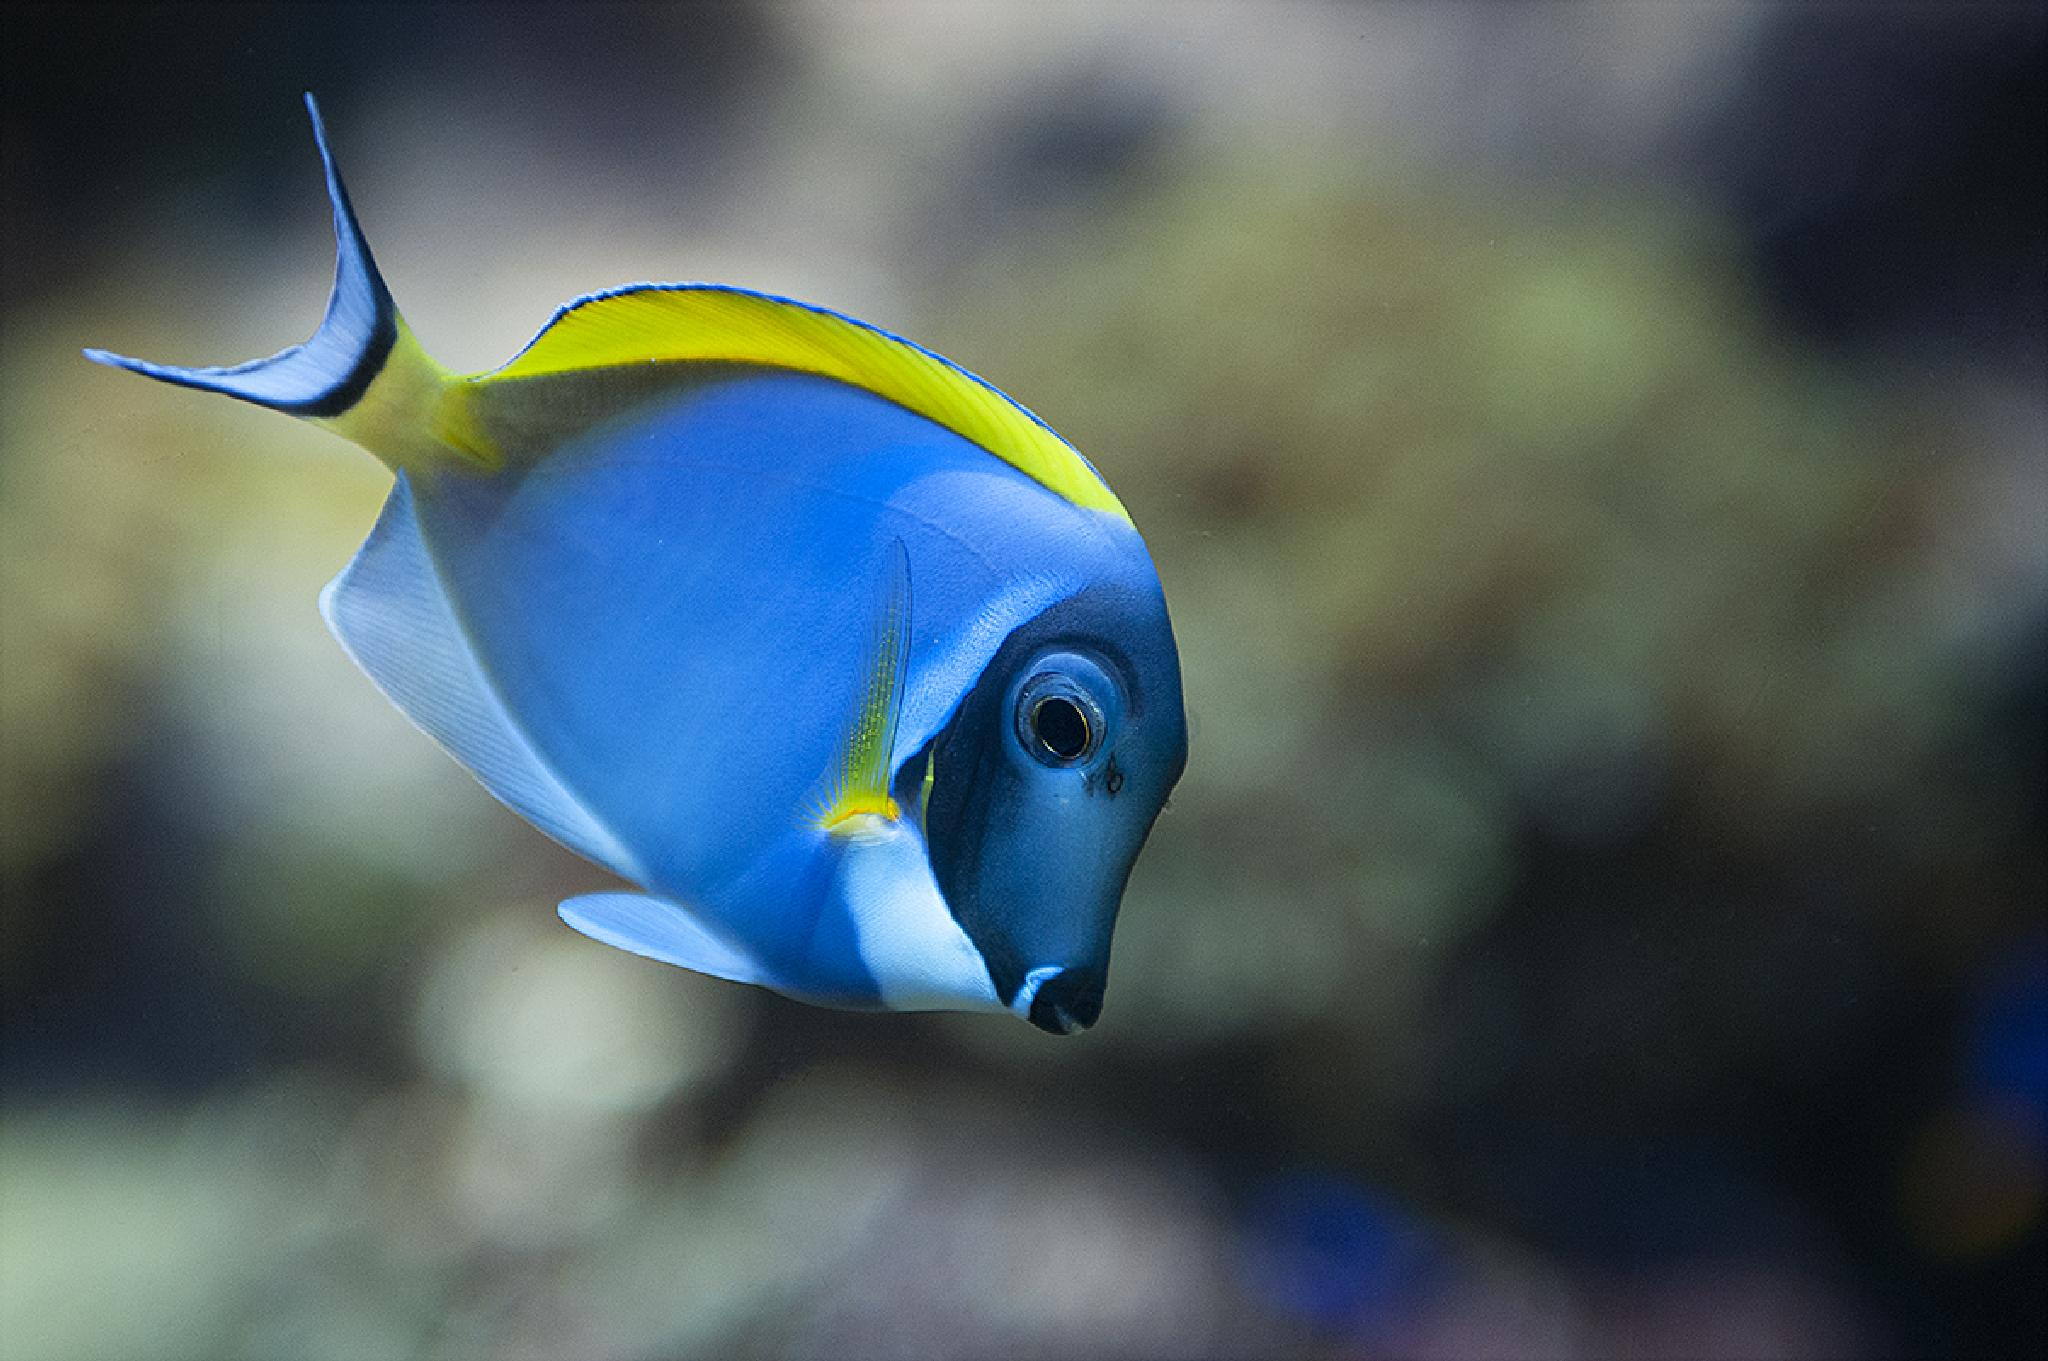 The lonely blue yellow fish  by stephanie_degen_photography